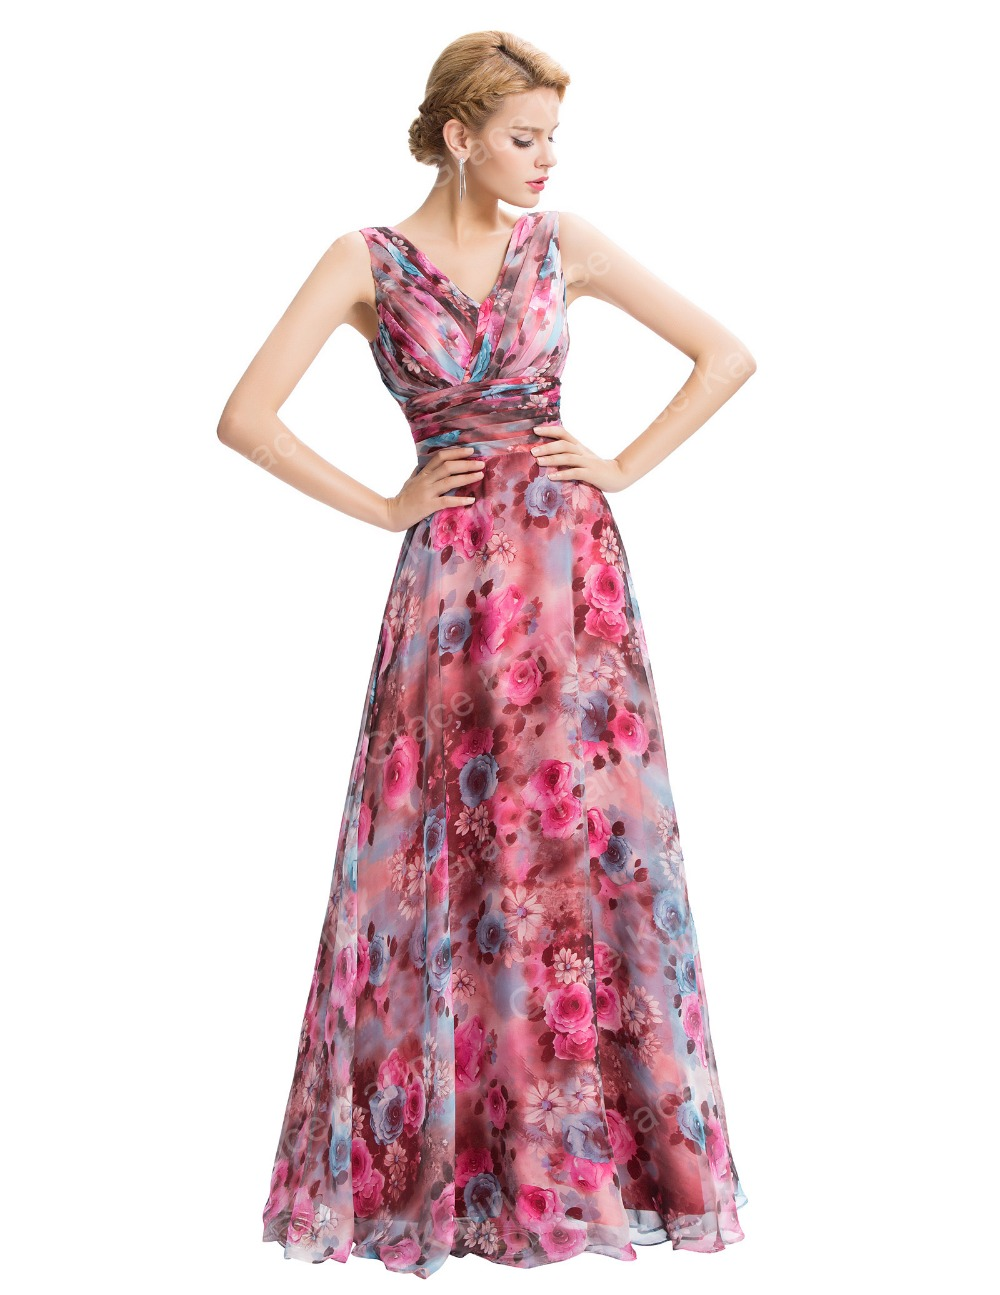 Grace karin new sleeveless v neck floral pattern chiffon long grace karin new sleeveless v neck floral pattern chiffon long bridesmaid dress gk000058 1 ombrellifo Image collections